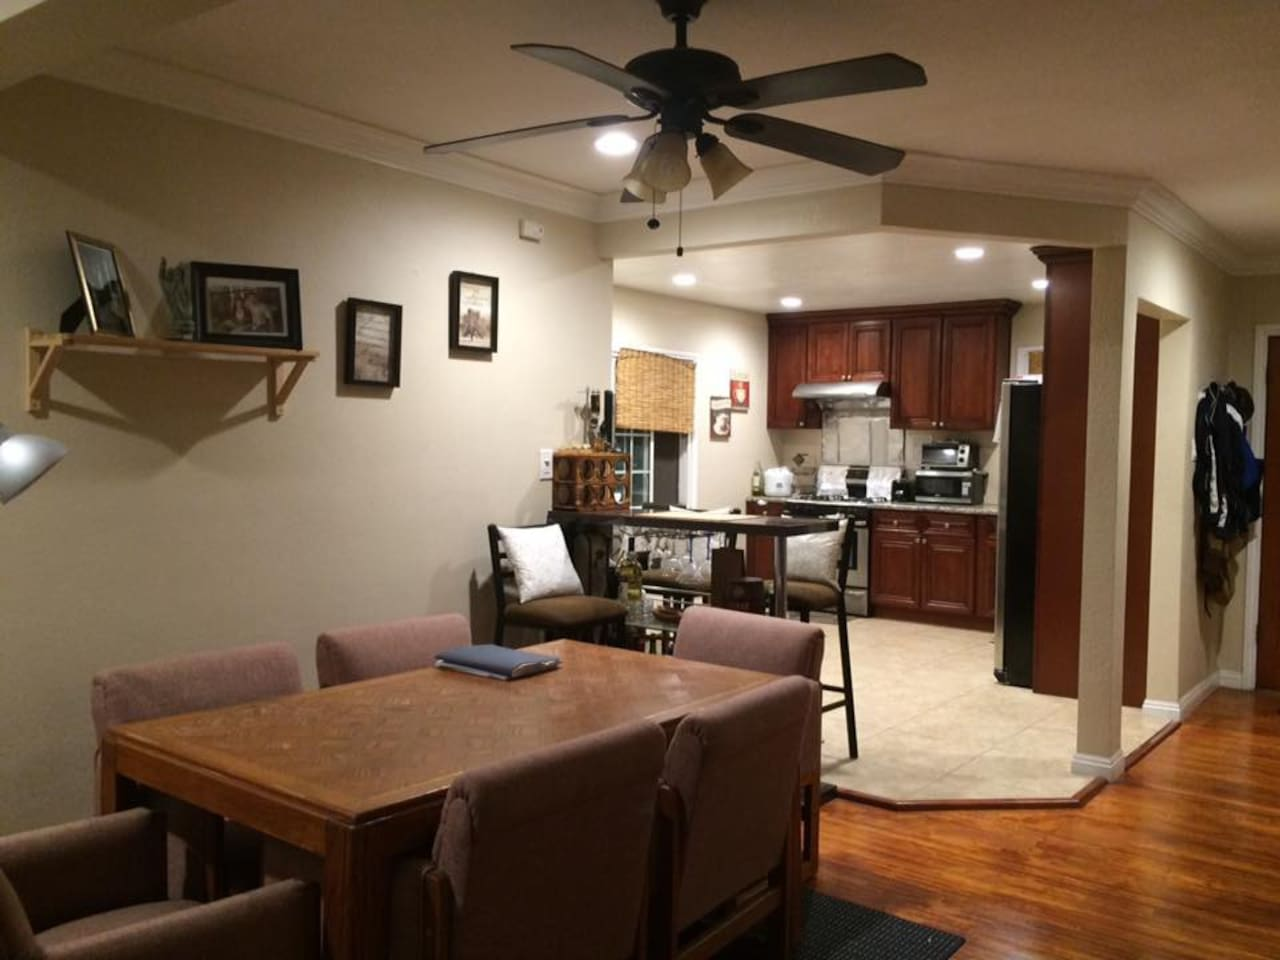 Cozy Home near by DisneyLand - Houses for Rent in Garden Grove ...